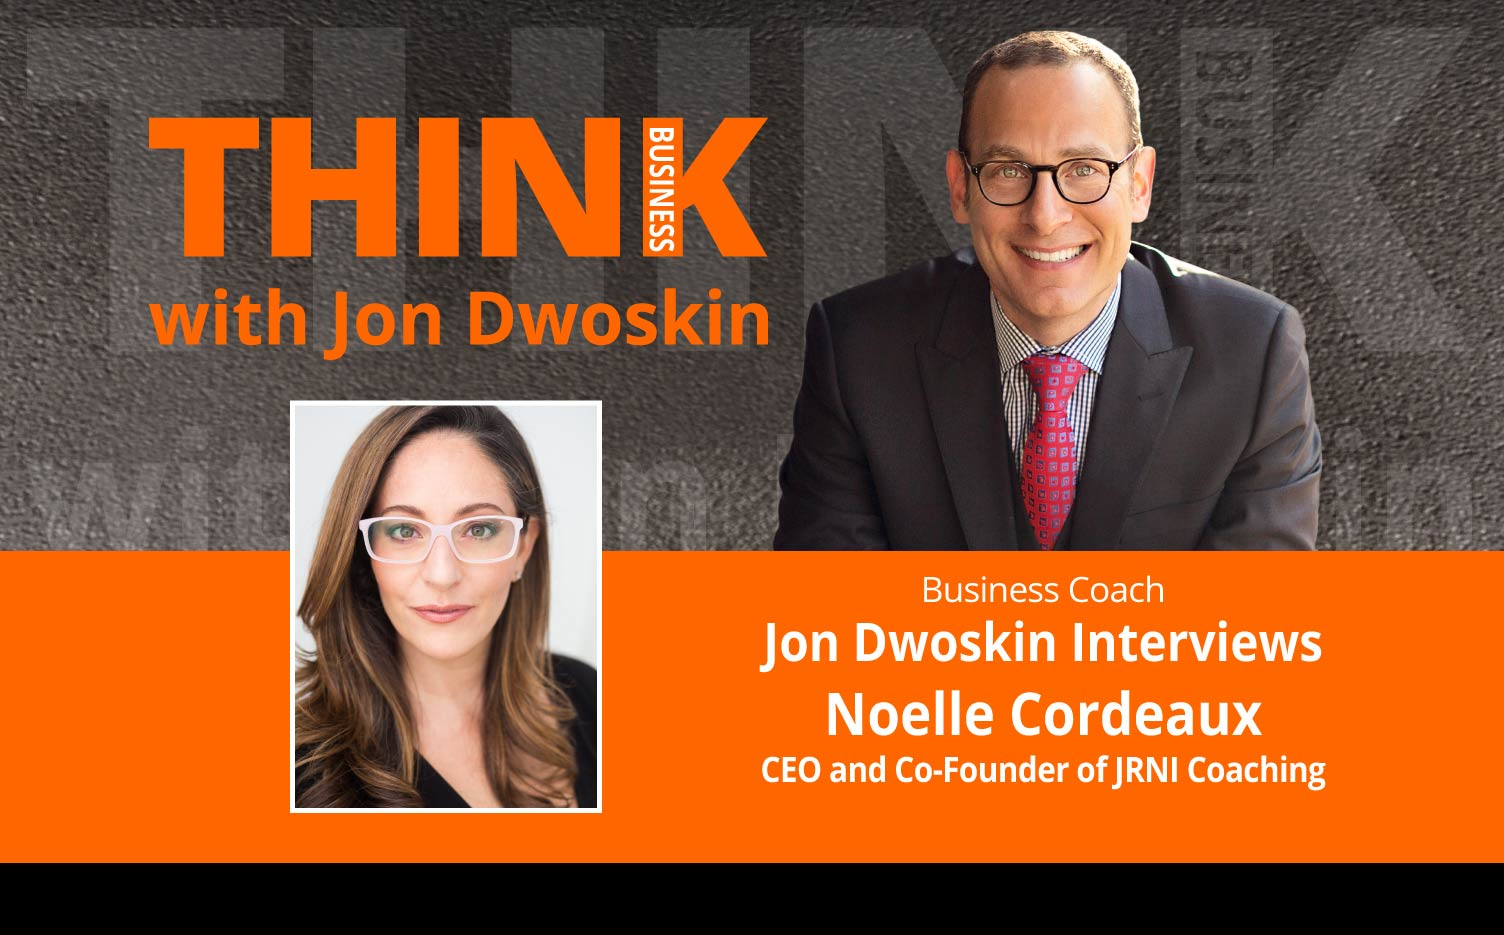 THINK Business Podcast: Jon Dwoskin Interviews Noelle Cordeaux, CEO and Co-Founder of JRNI Coaching